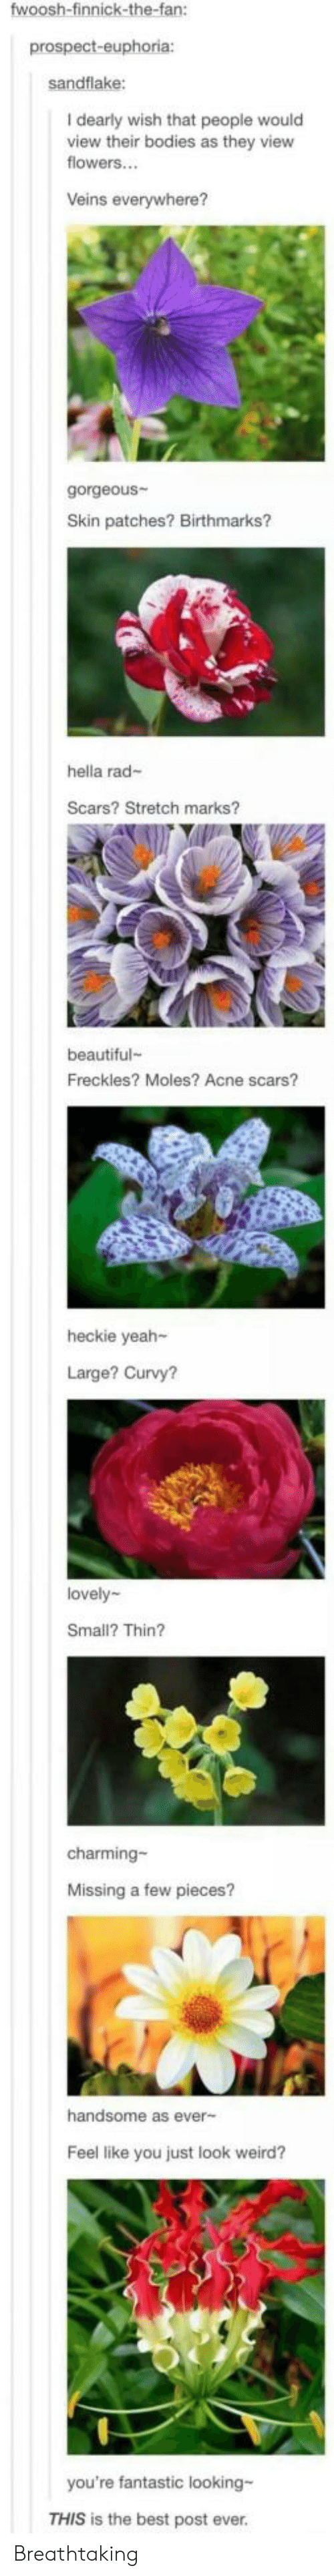 Beautiful, Bodies , and Weird: fwoosh-finnick-the-fan:  prospect-euphoria:  sandflake:  I dearly wish that people would  view their bodies as they view  flowers...  Veins everywhere?  gorgeous  Skin patches? Birthmarks?  hella rad-  Scars? Stretch marks?  beautiful  Freckles? Moles? Acne scars?  heckie yeah-  Large? Curvy?  lovely  Small? Thin?  charming-  Missing a few pieces?  handsome as ever-  Feel like you just look weird?  you're fantastic looking-  THIS is the best post ever. Breathtaking